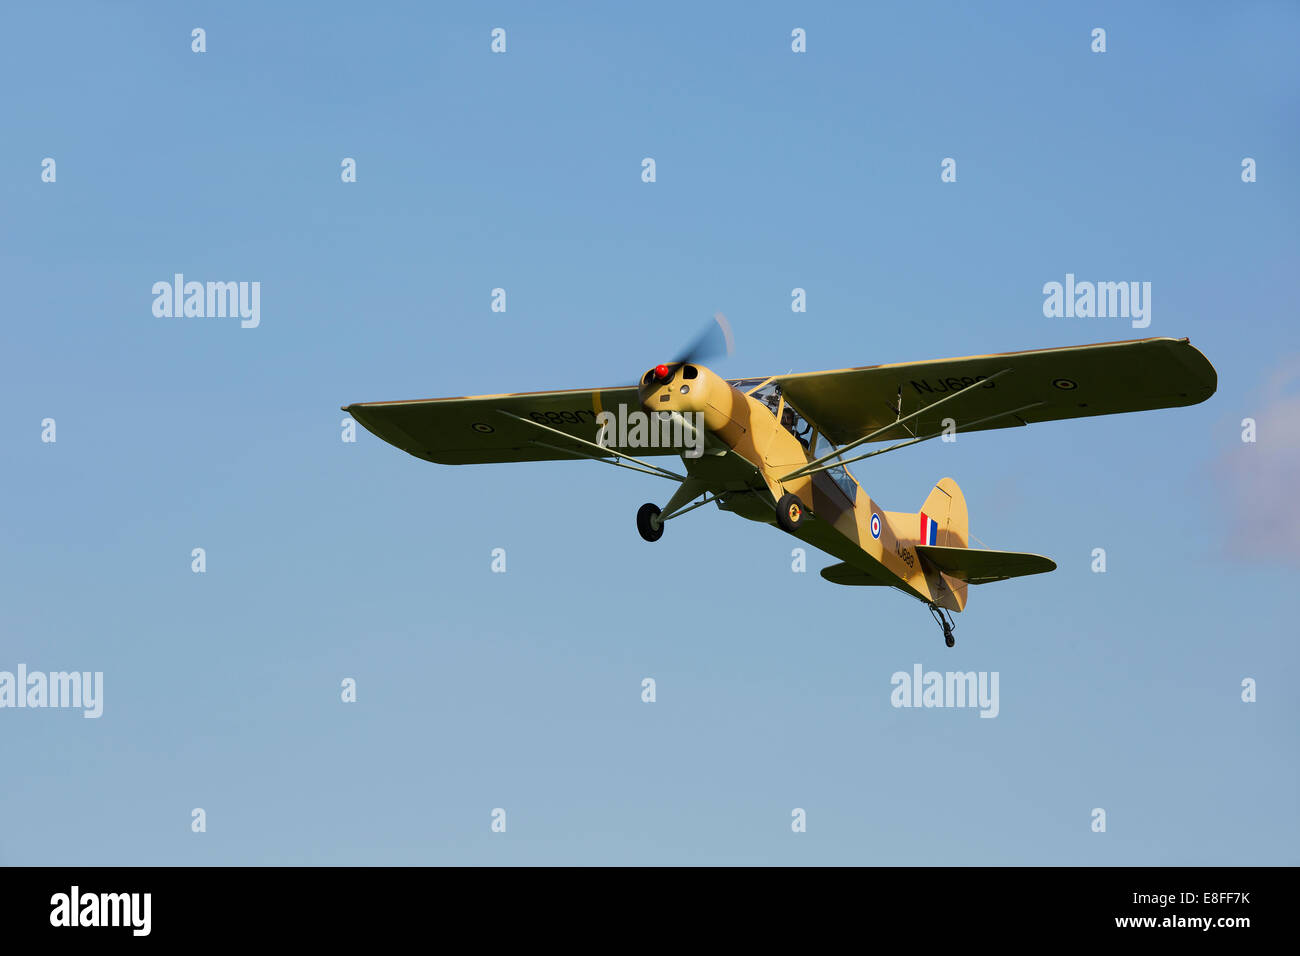 Auster 5-150 NL699 G-ALXZ in flight taking-off from Breighton Airfield - Stock Image